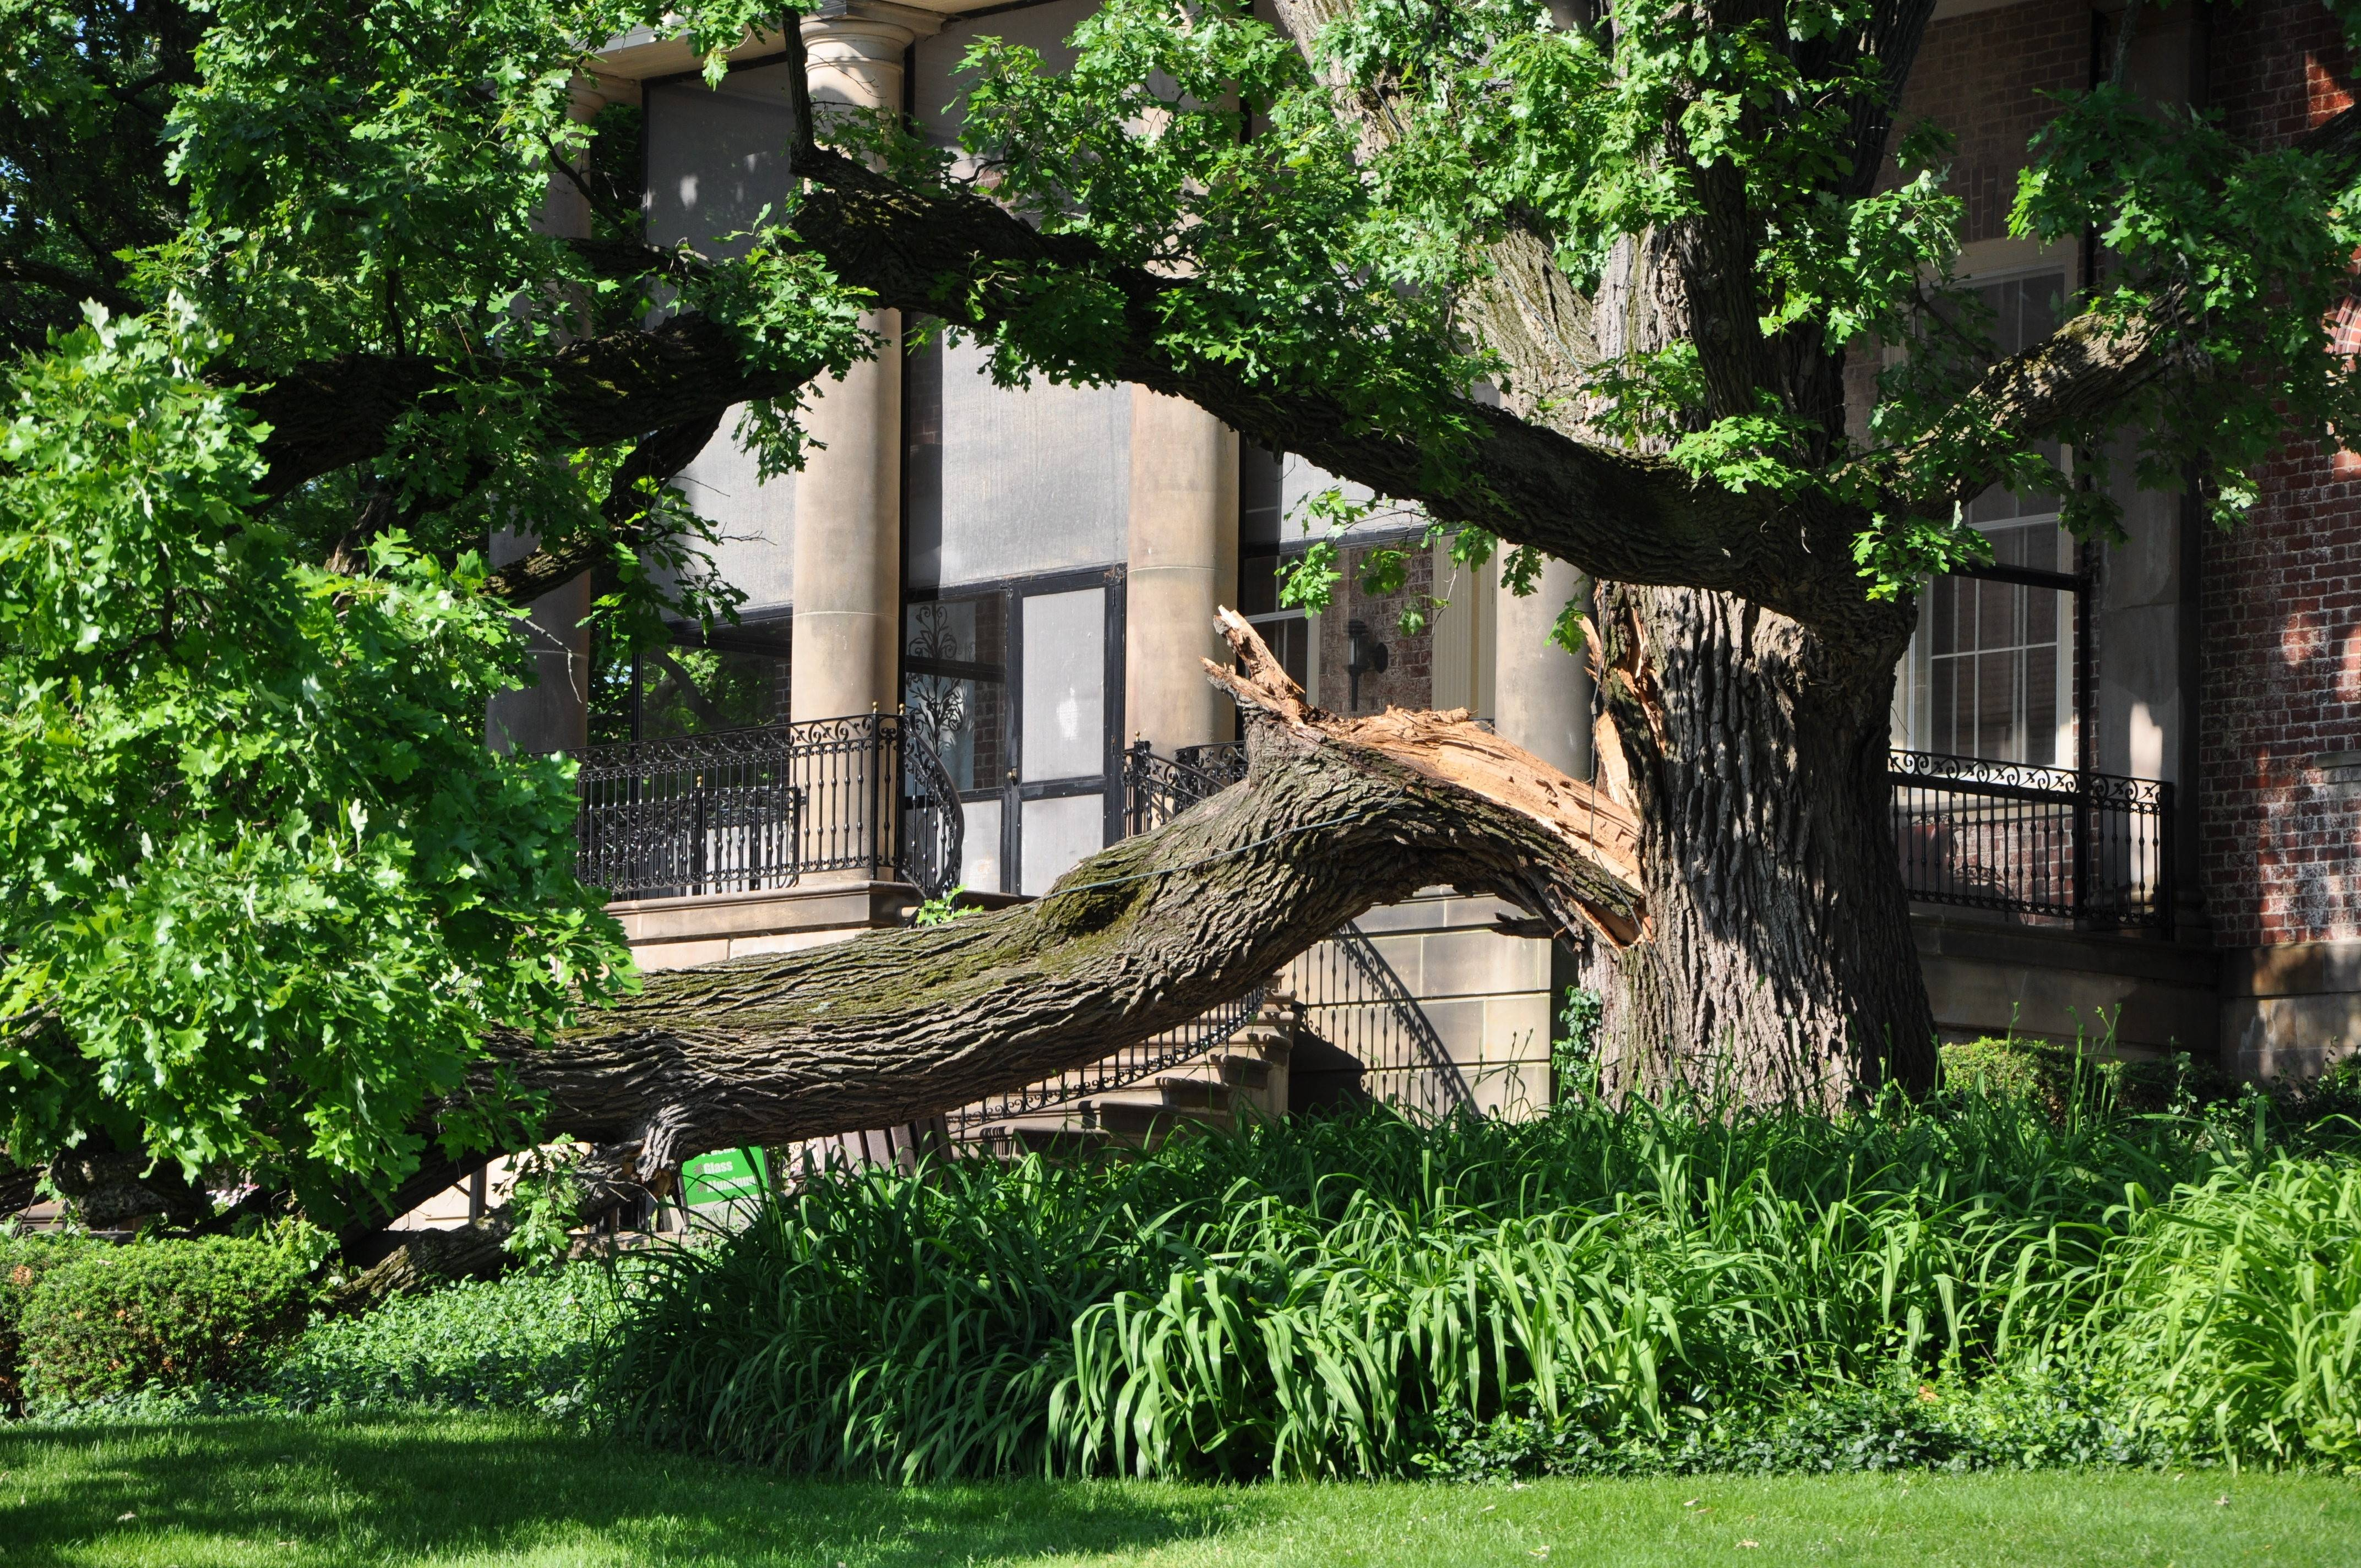 A large branch fell Sunday from a tree on the east side of the McCormick Museum at Cantigny Park in Wheaton, injuring three people and damaging a bench and a garbage can.